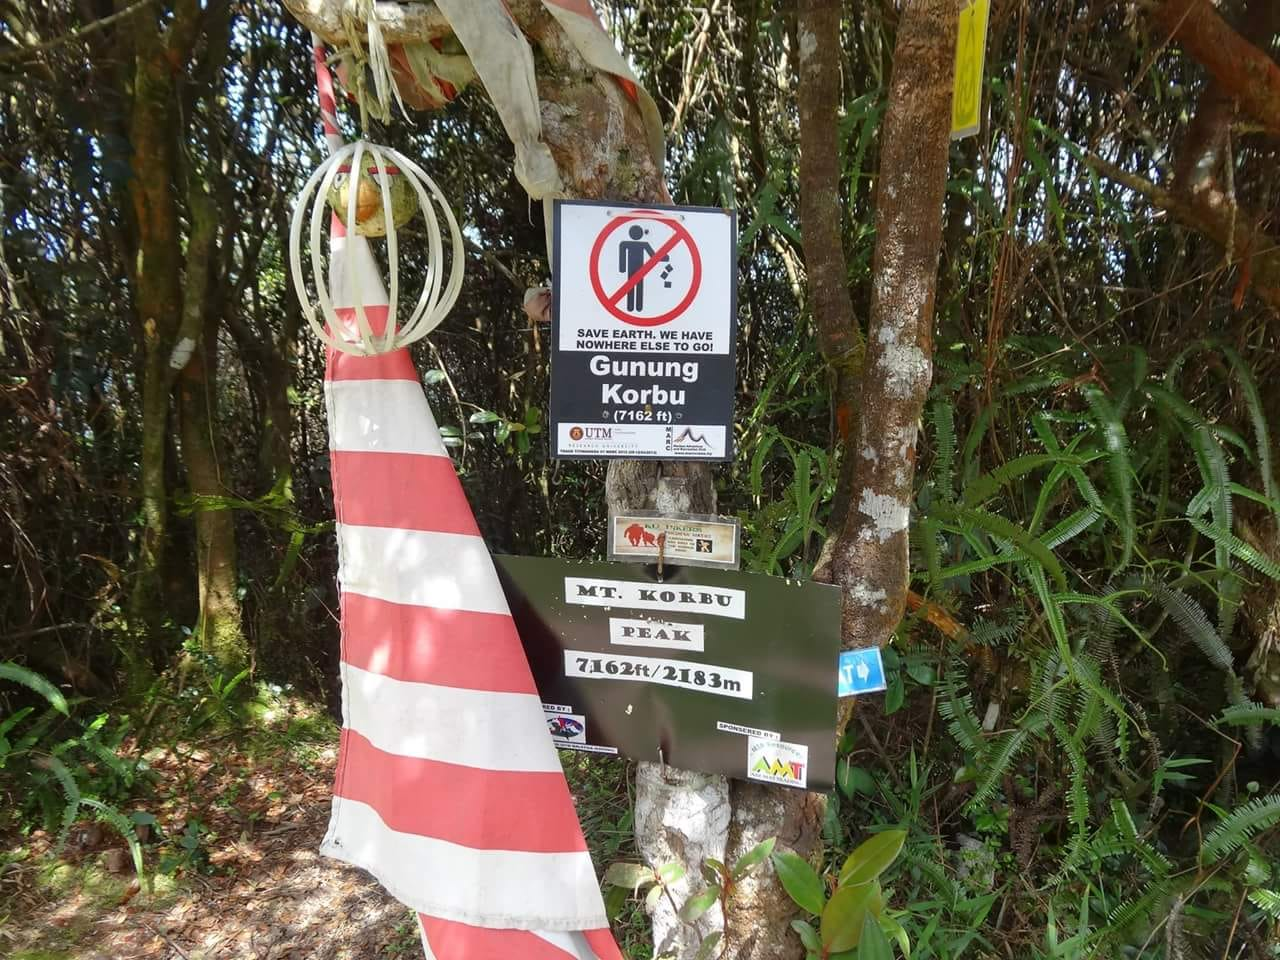 13 The summit signs and flag on the top of gunung Korbu